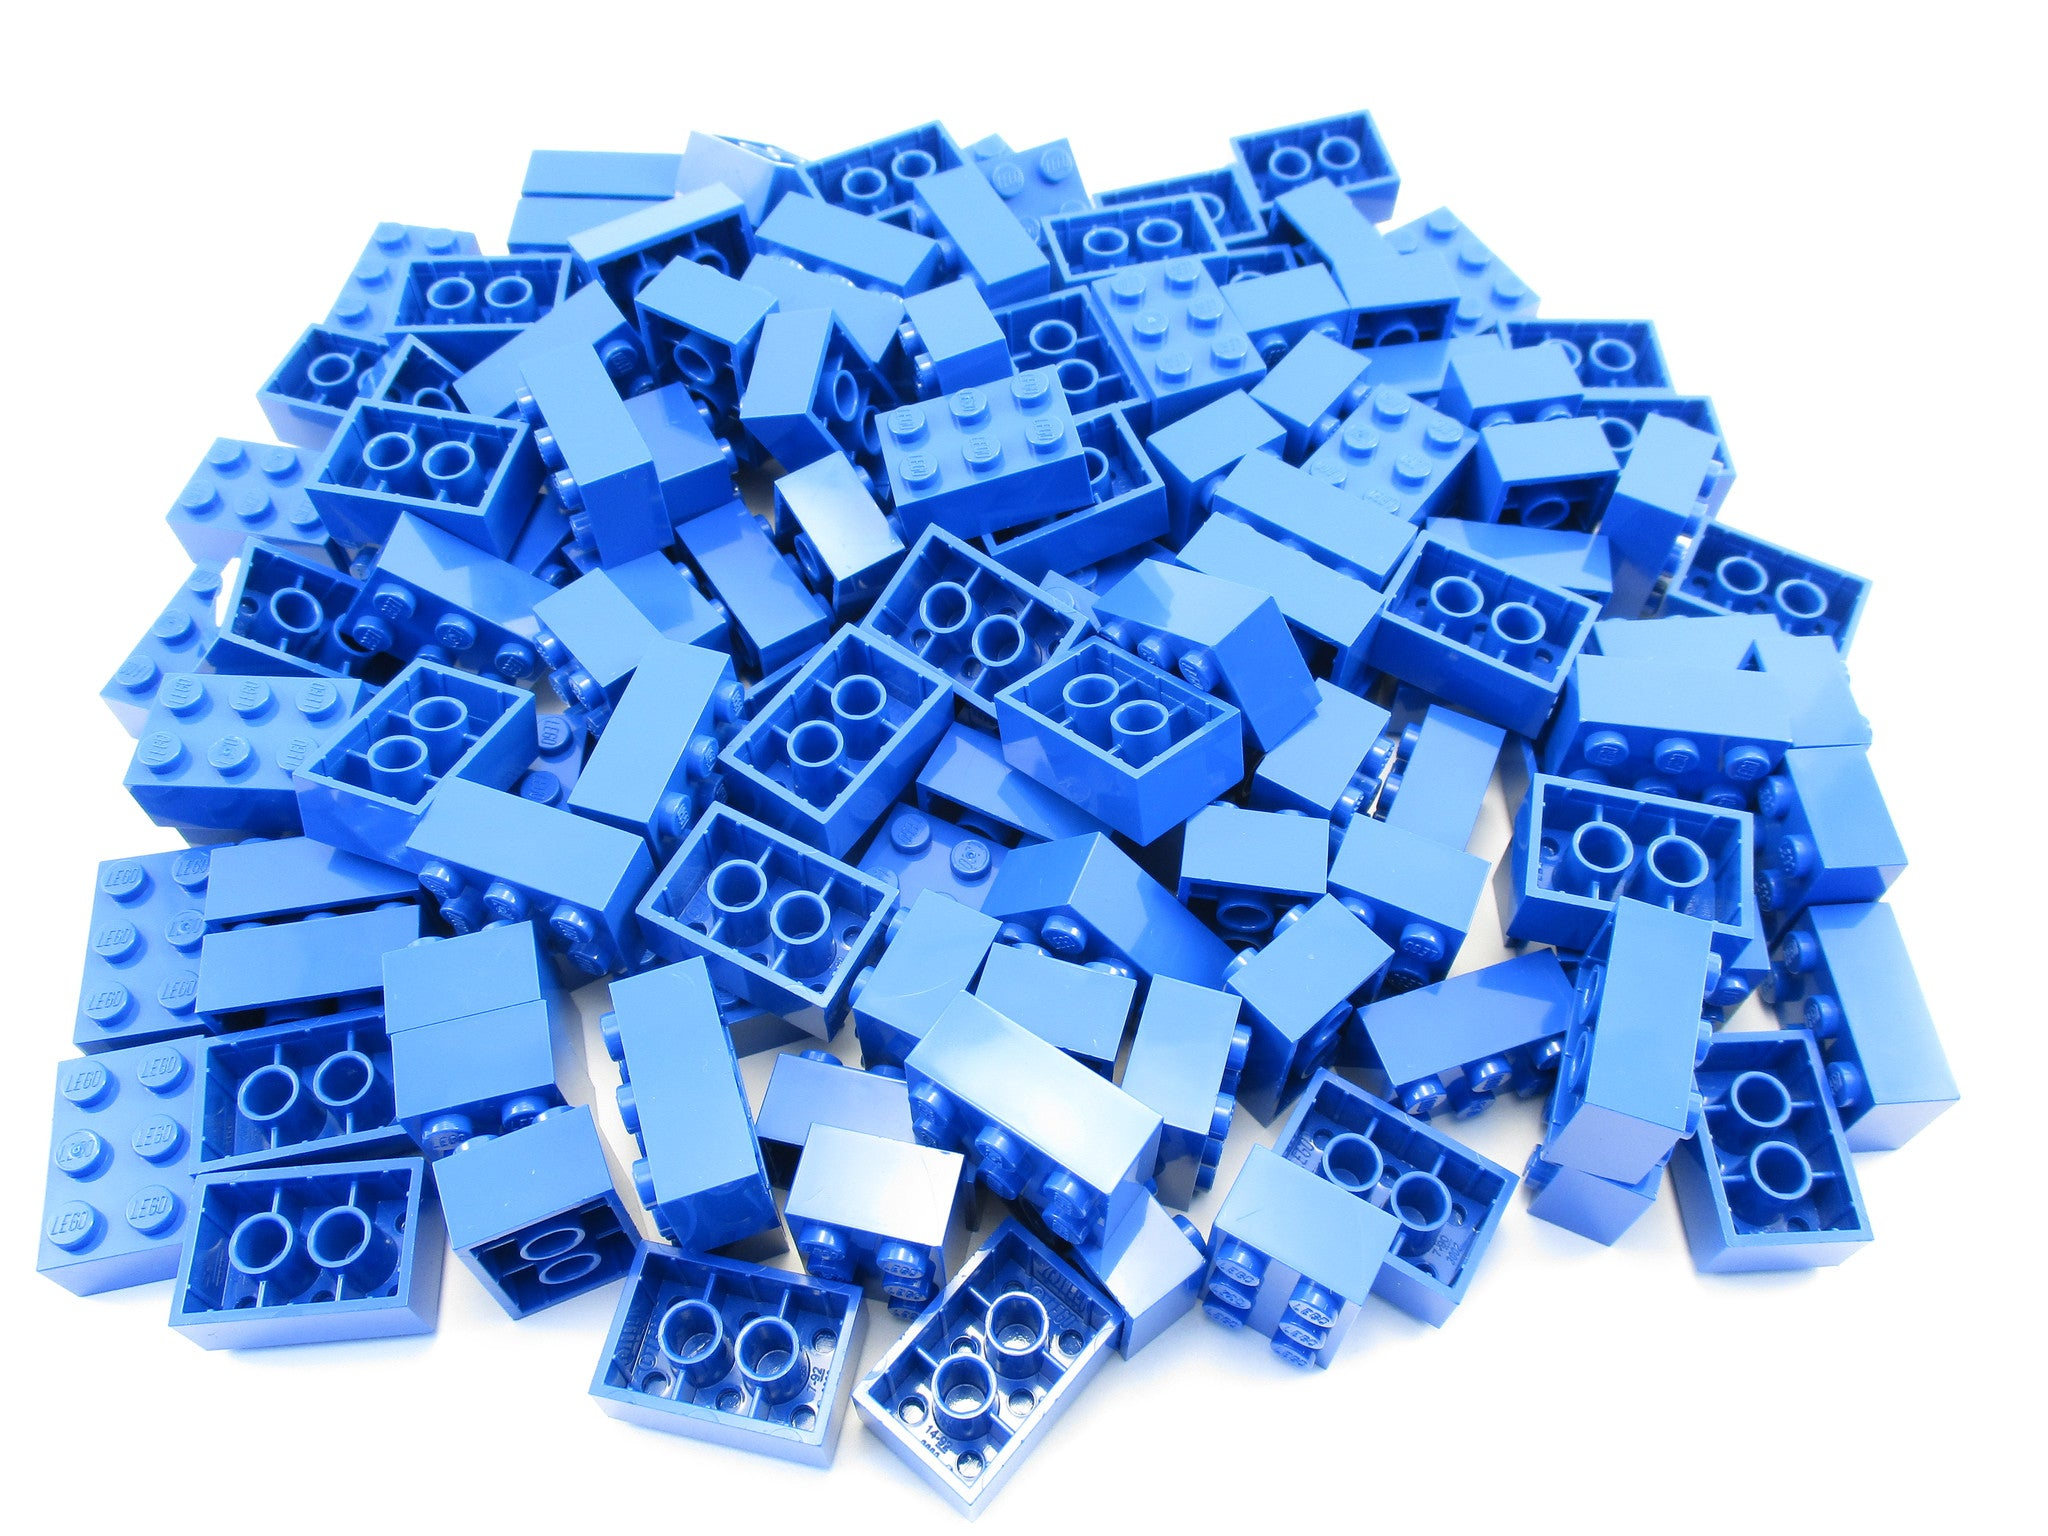 LEGO Blue Brick 2x3 Lot of 100 Parts Pieces 3002